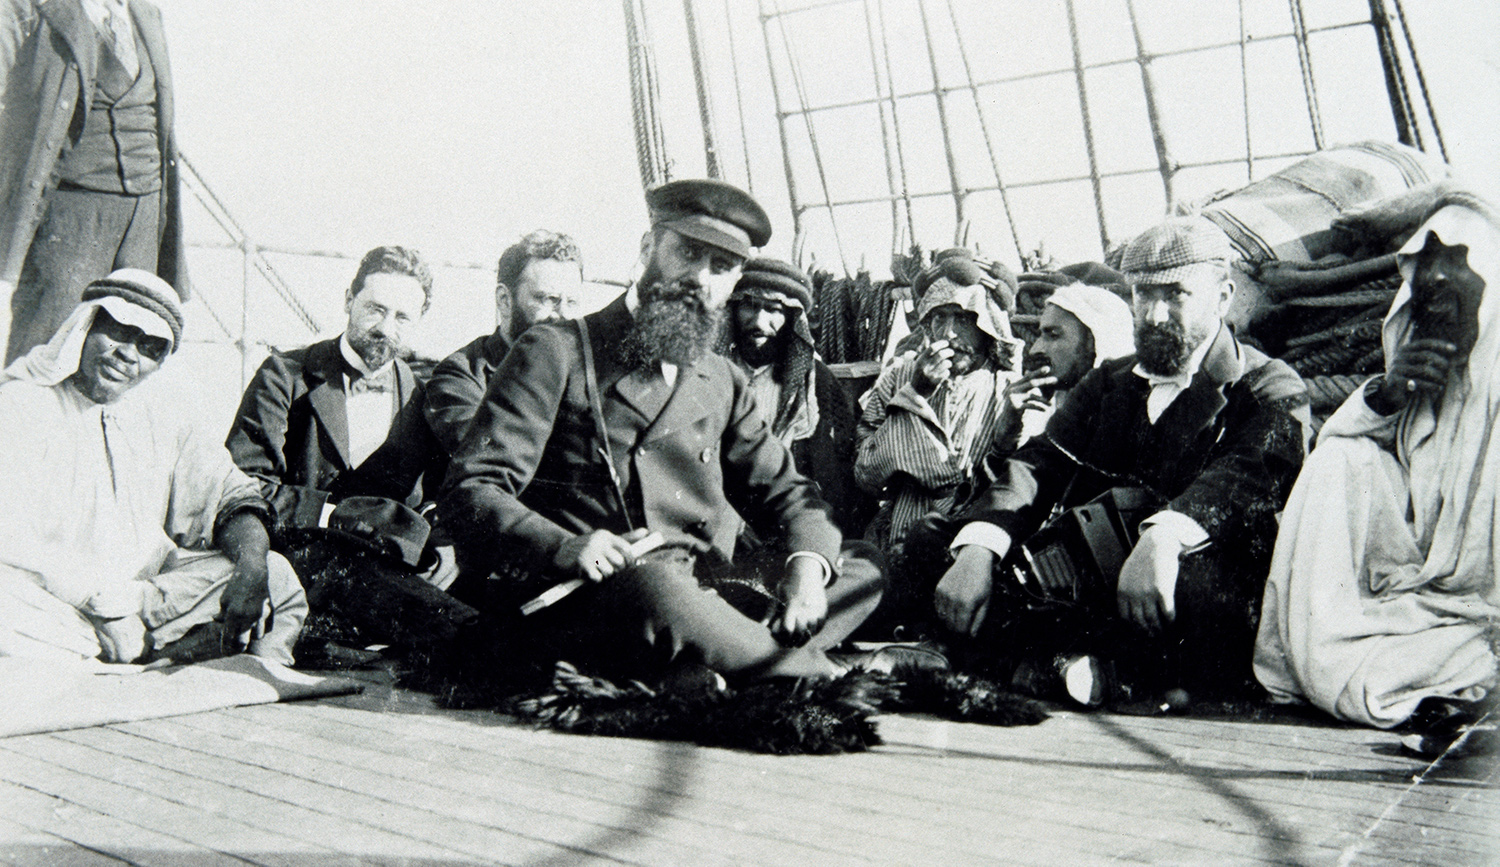 Theodor Herzl on board the Imperator Nikolaus II in 1898 with (from left to right) Max Bodenheimer, Moritz Schnirer und David Wolffsohn. Imagno/Getty Images.